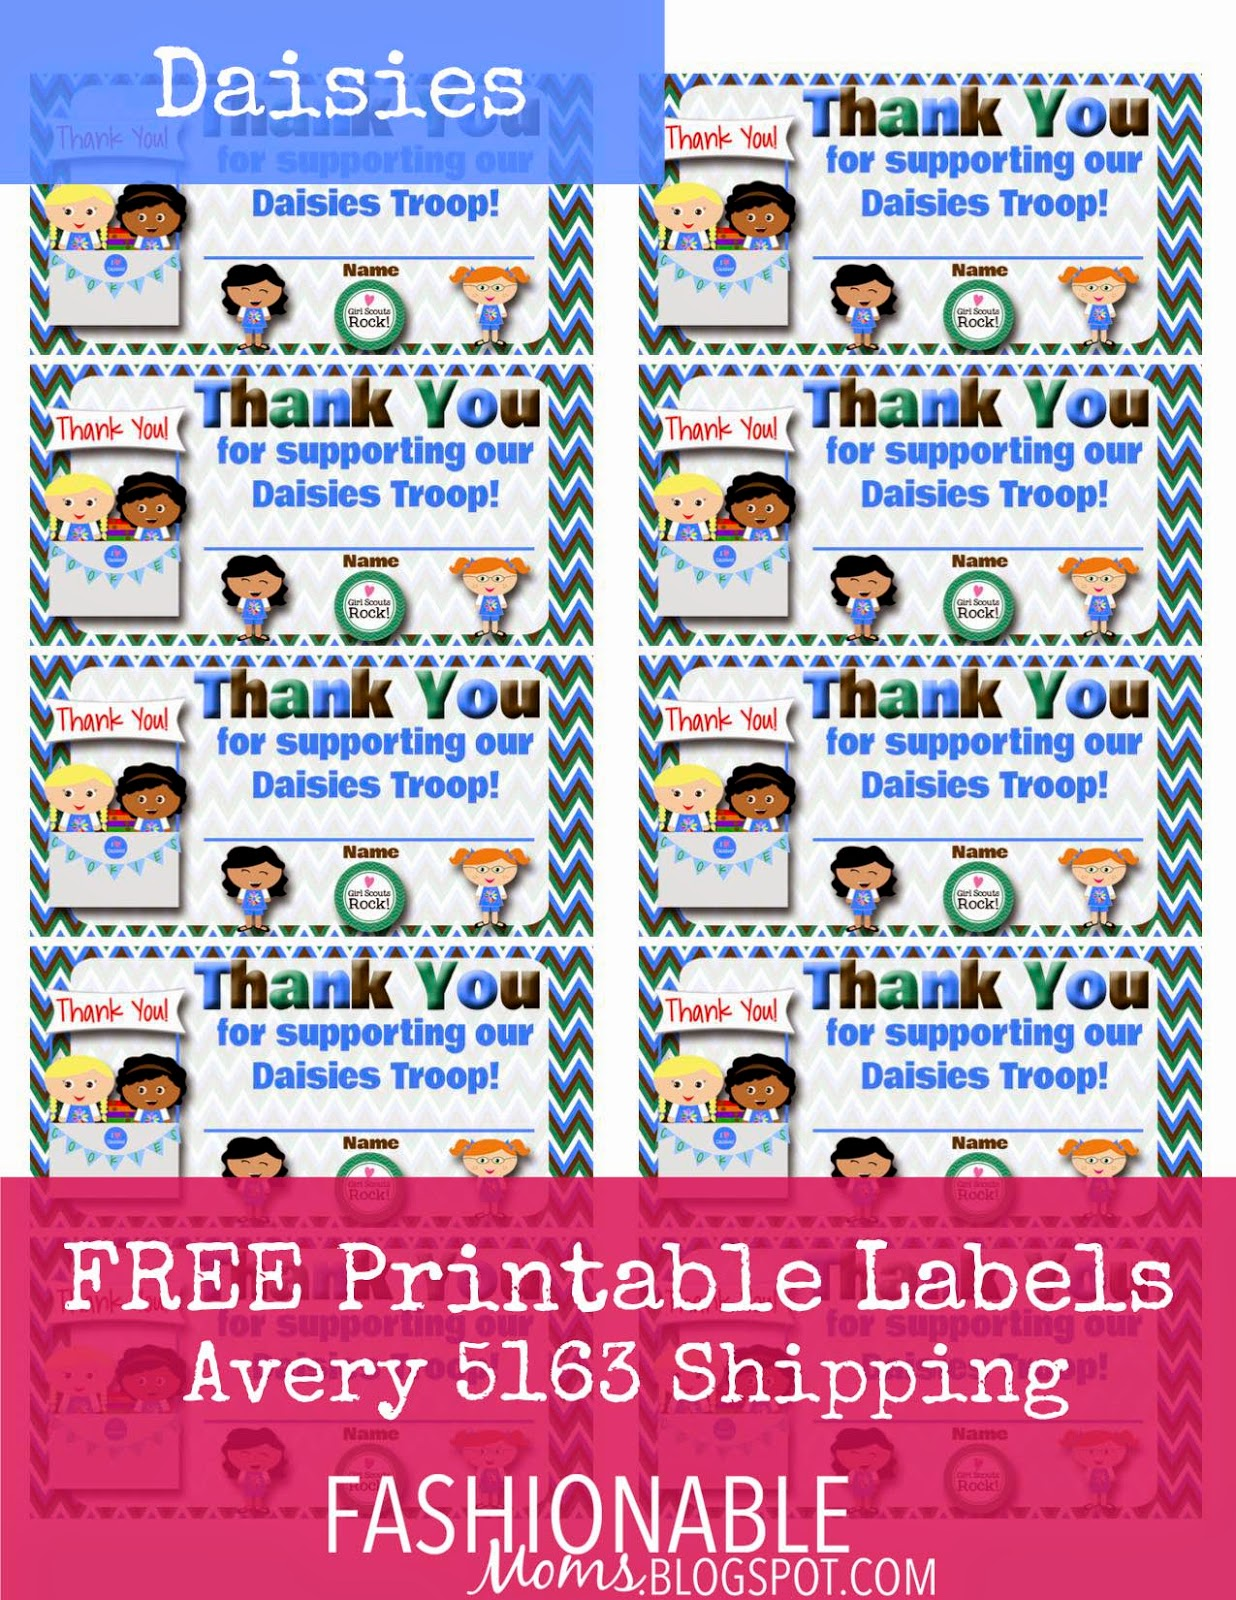 photograph about Girl Scout Cookie Thank You Notes Printable known as My Contemporary Strategies: January 2015